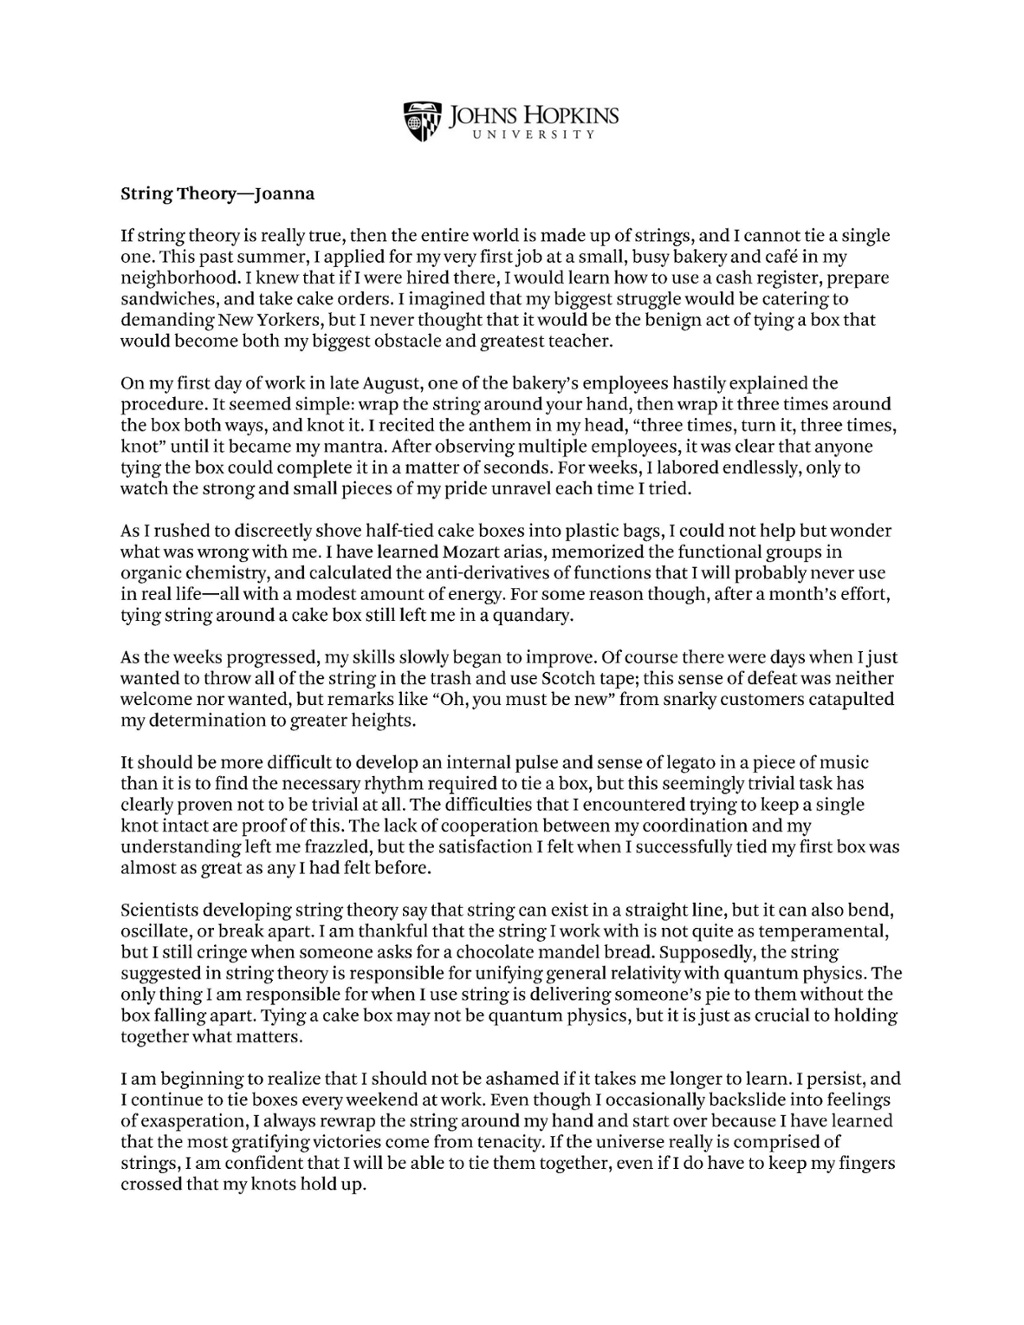 examples of great college application essays